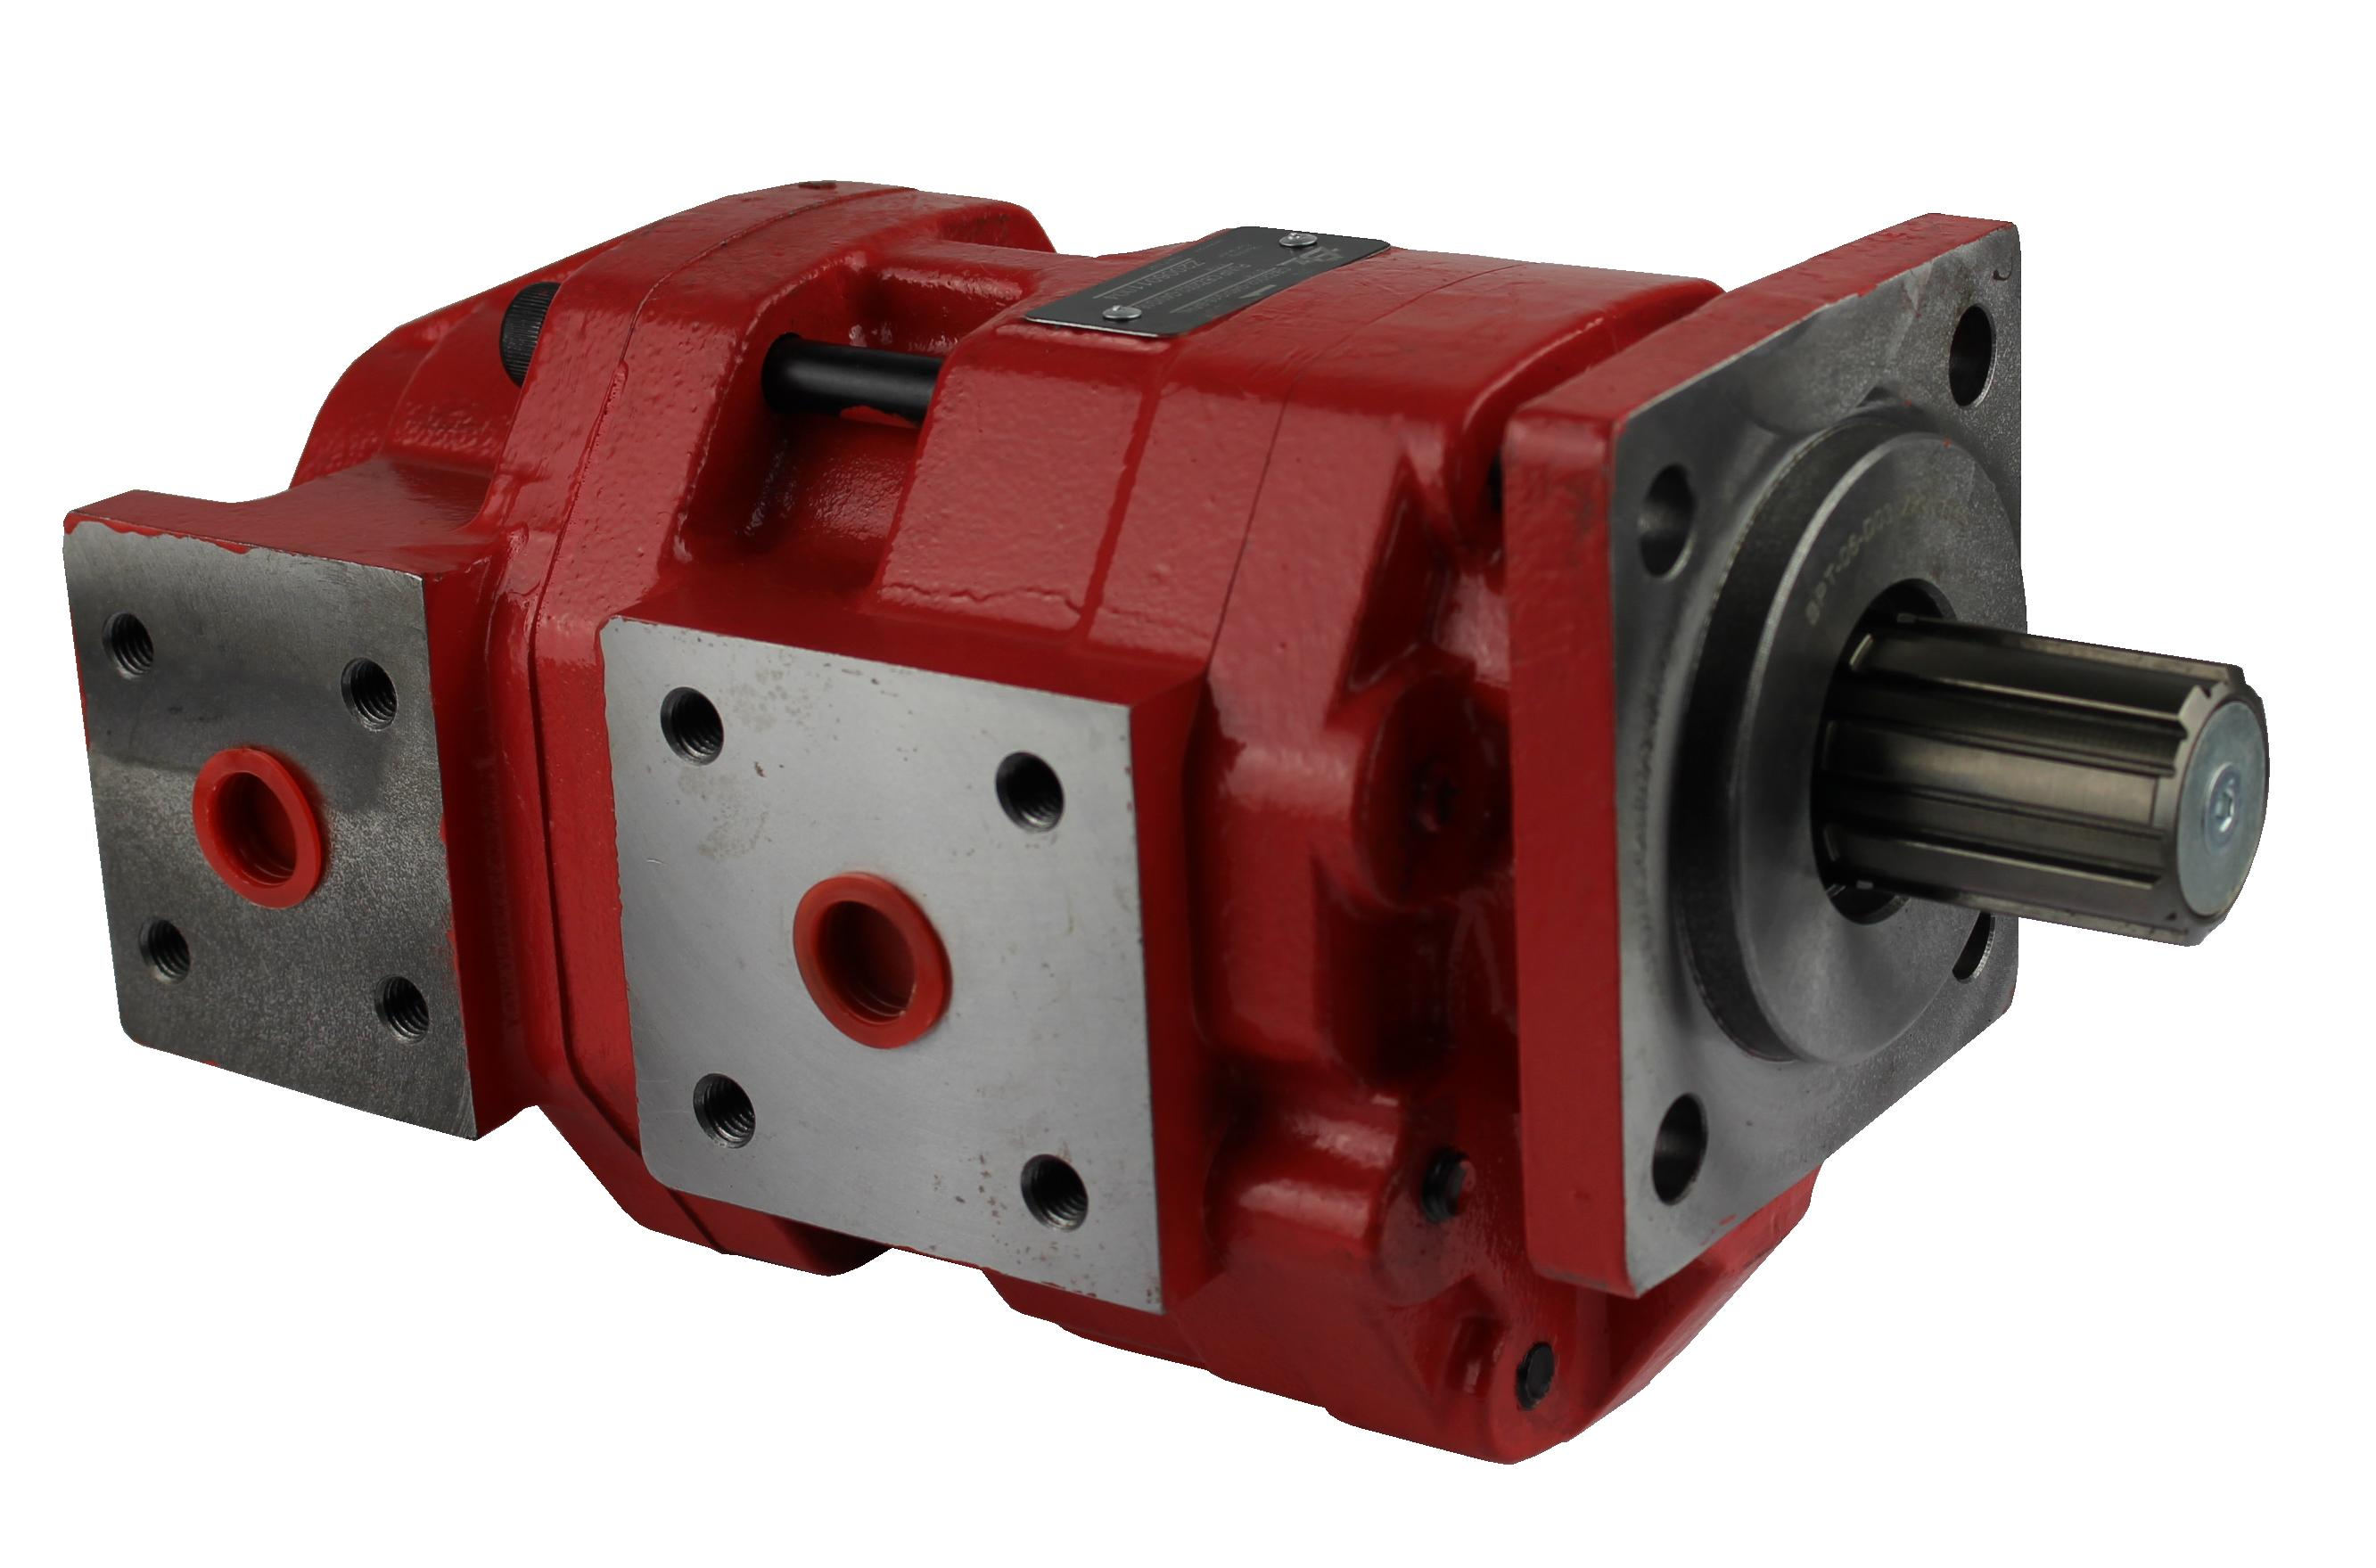 New BE2 40-16 Twin Flow Gear Pumps